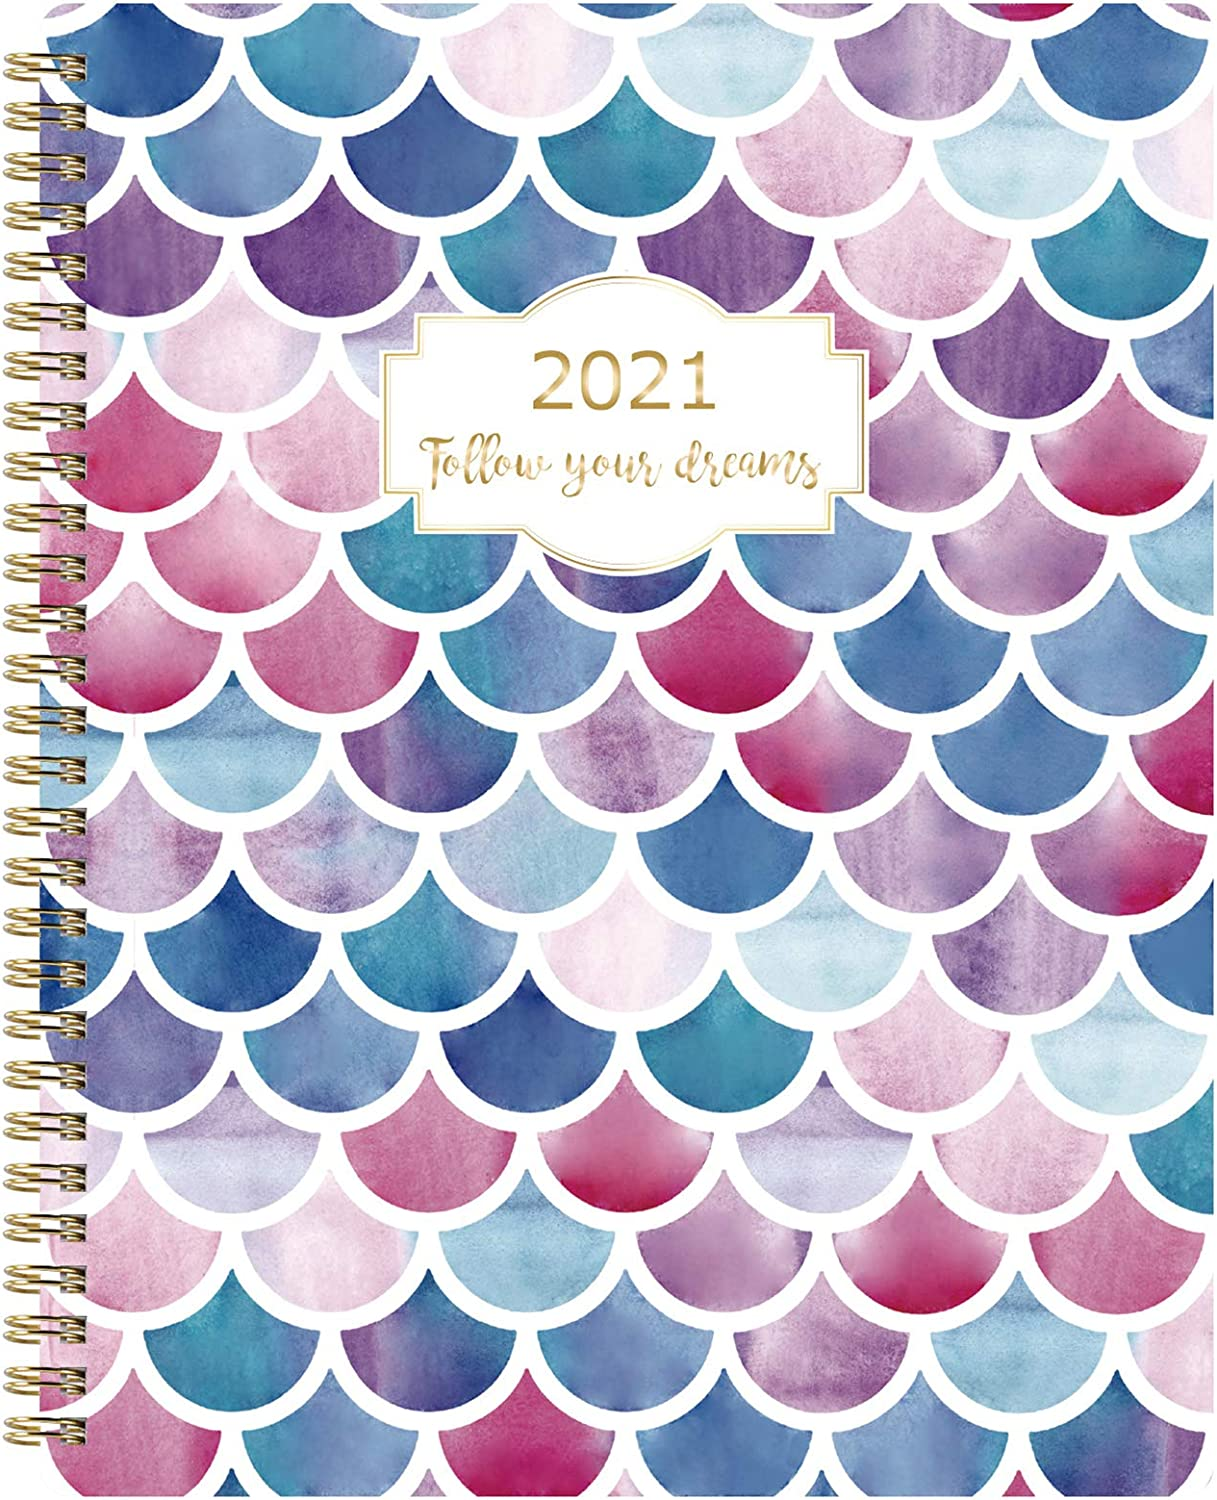 Planner 2021 - Weekly and Monthly Planner, 8'' x 9.75'', 2021 Planner from Jan. 2021 - Dec. 2021 with Check Boxes, To-Do List, Perfect for Planning Your Life or as Gift